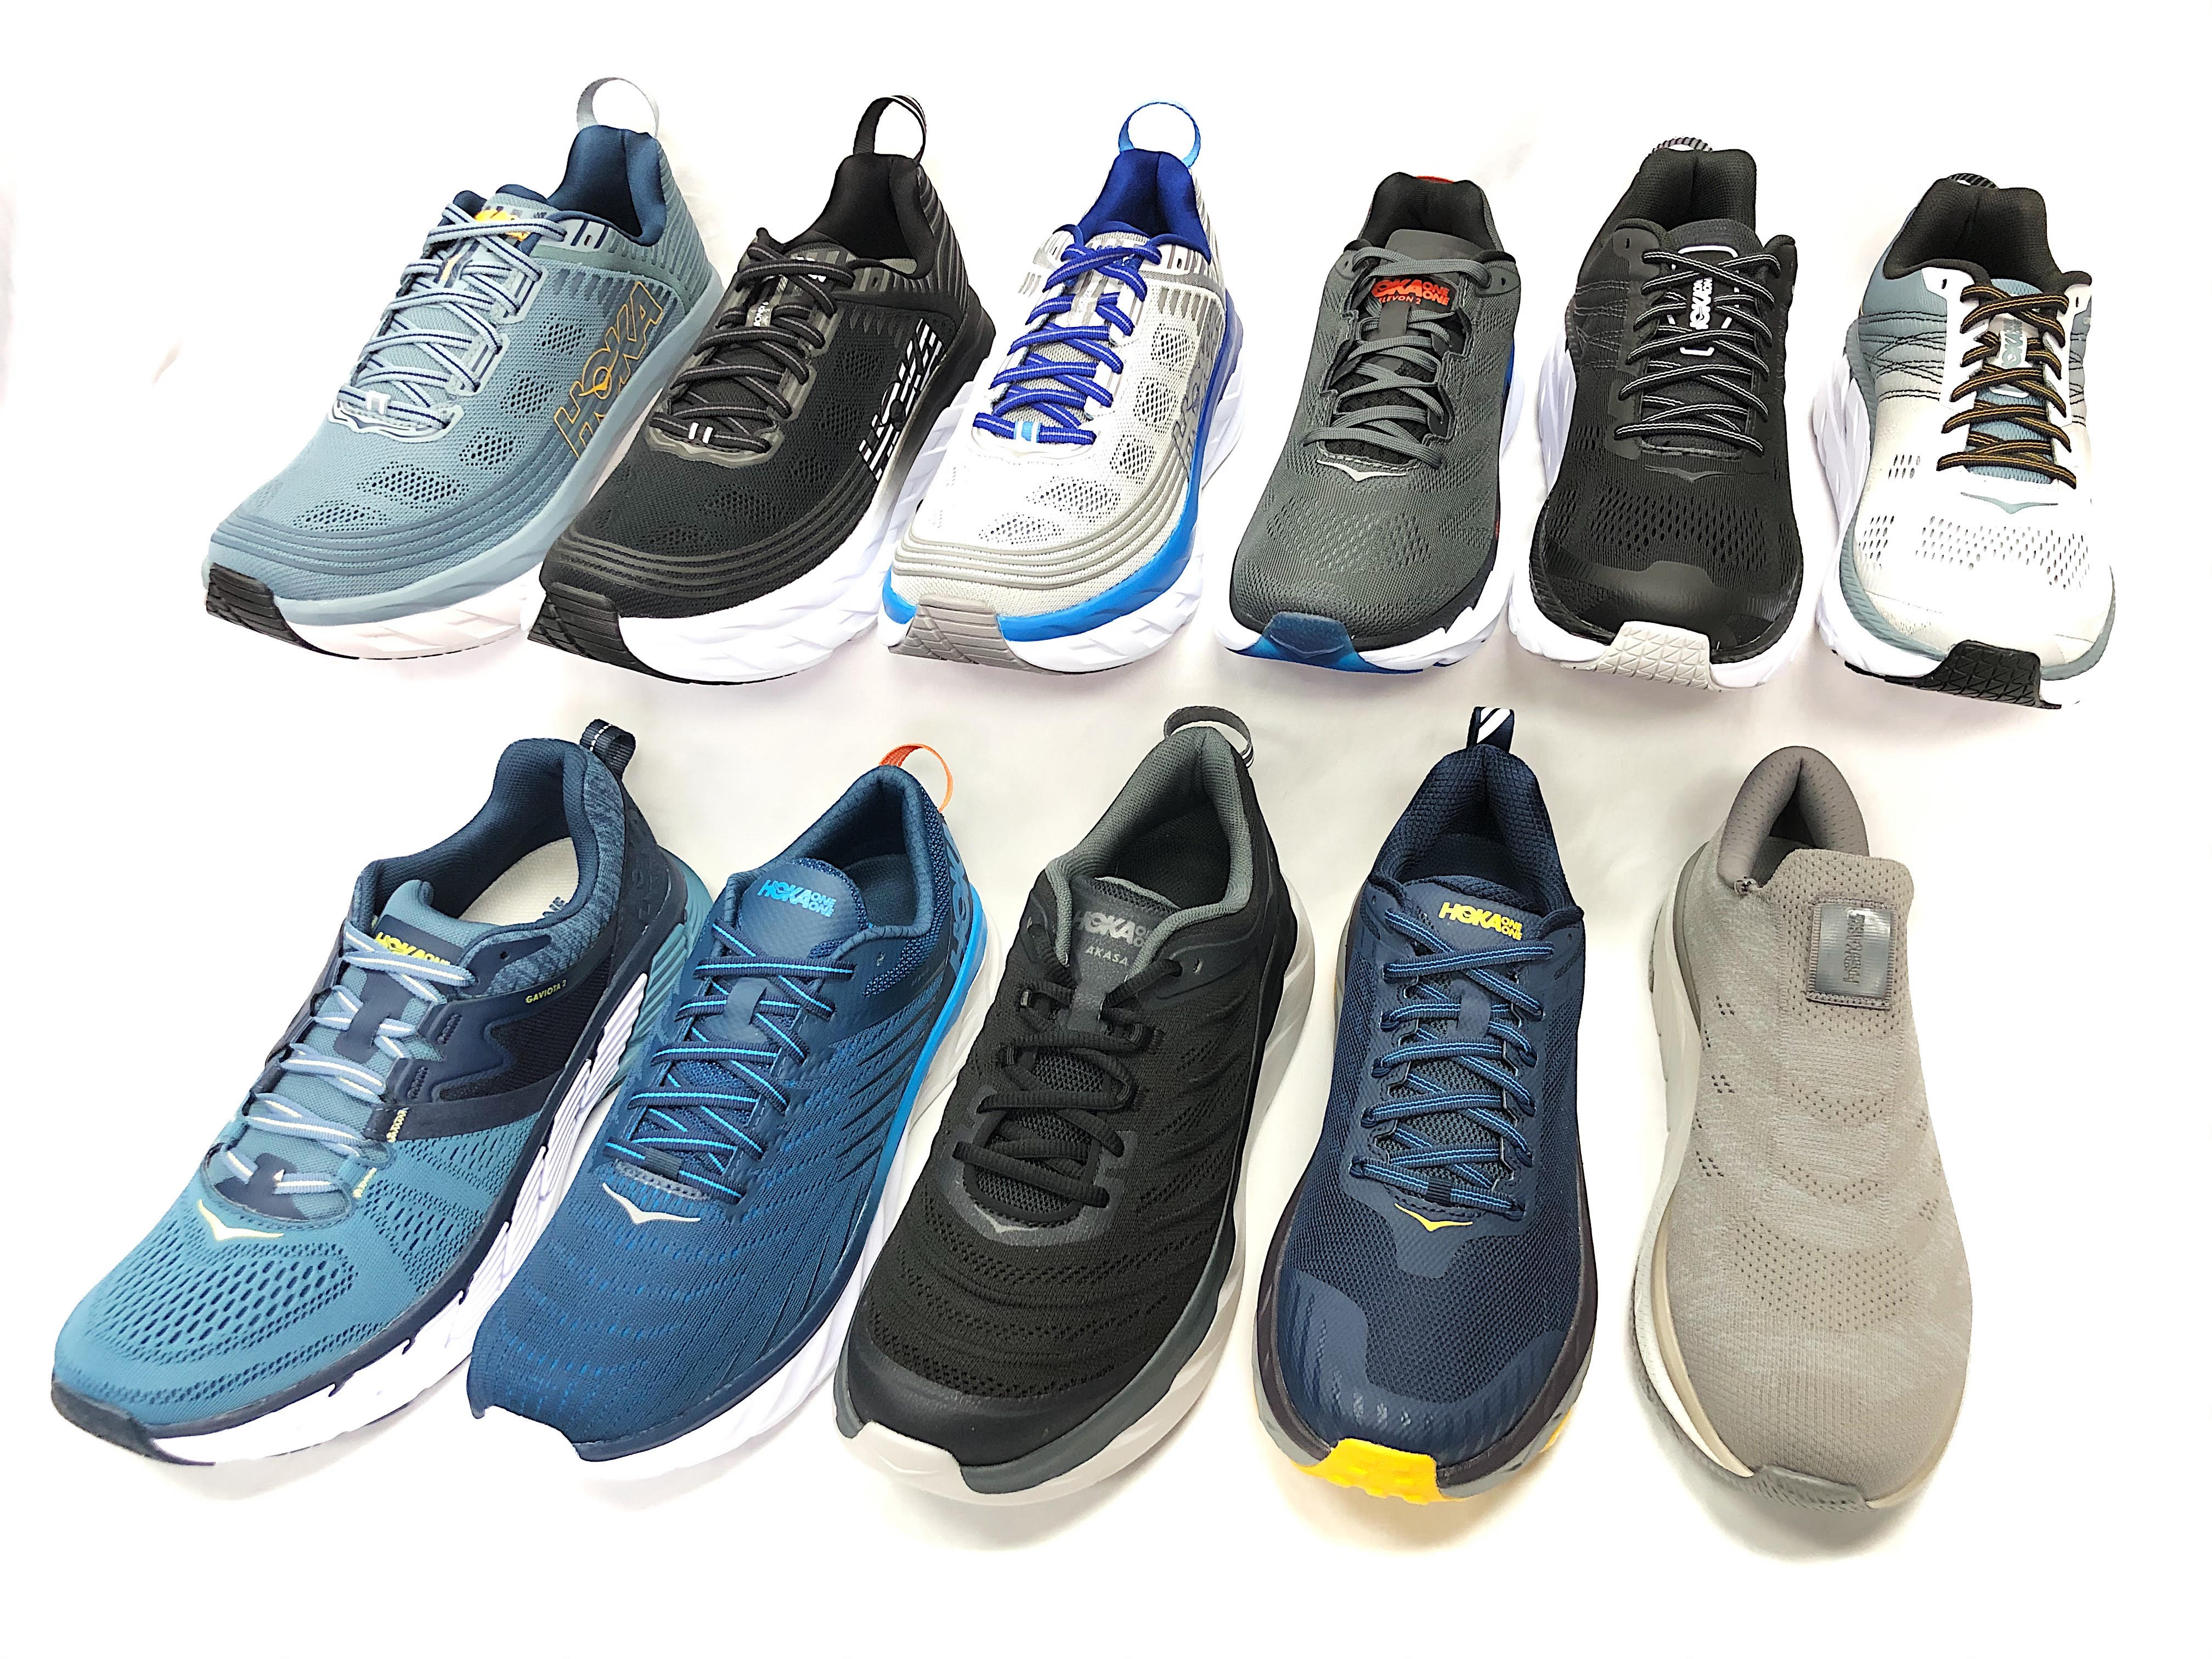 Hoka Collection